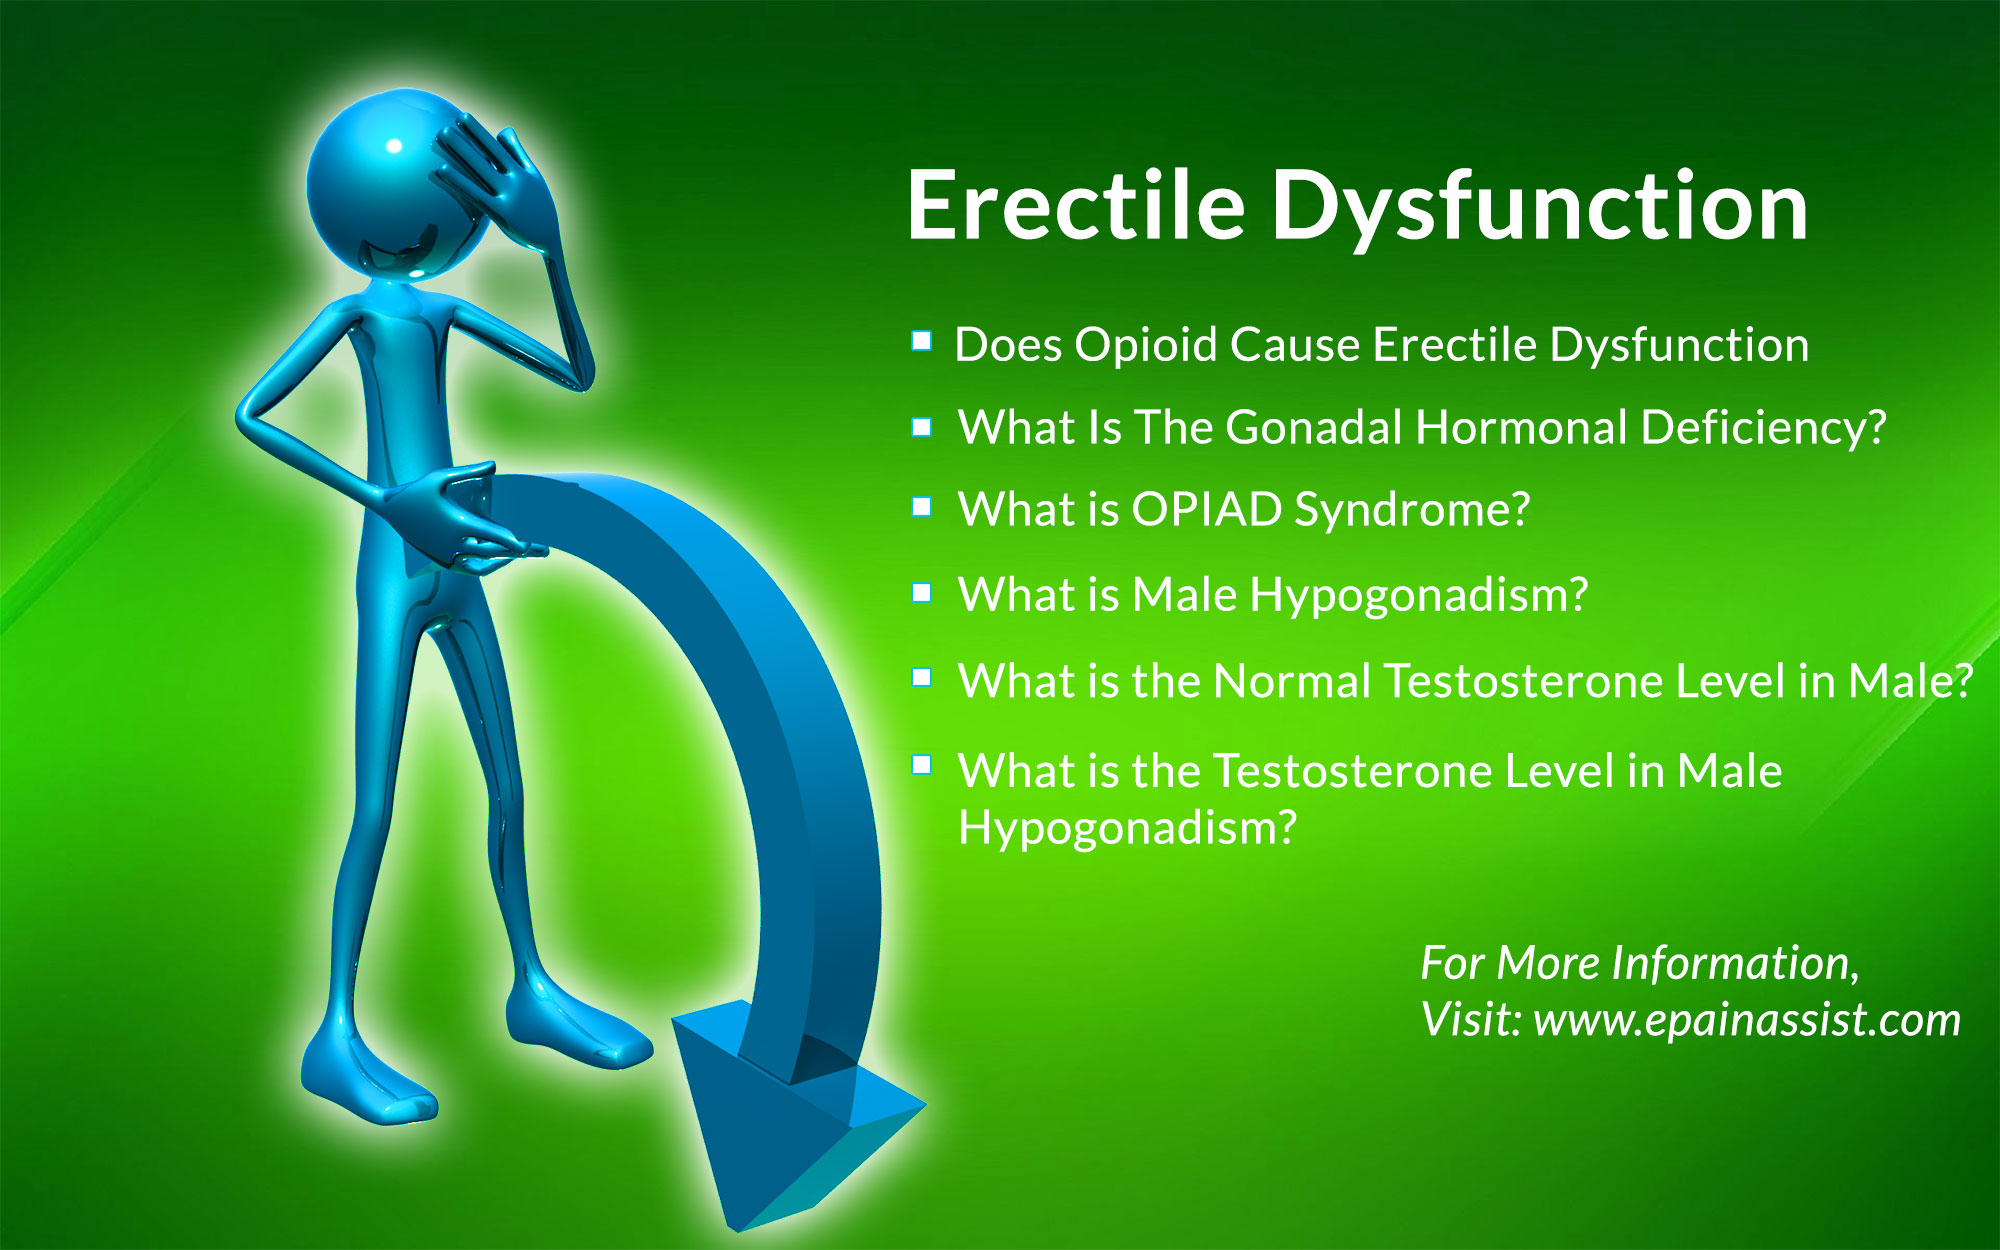 Does Opioid Cause Erectile Dysfunction?